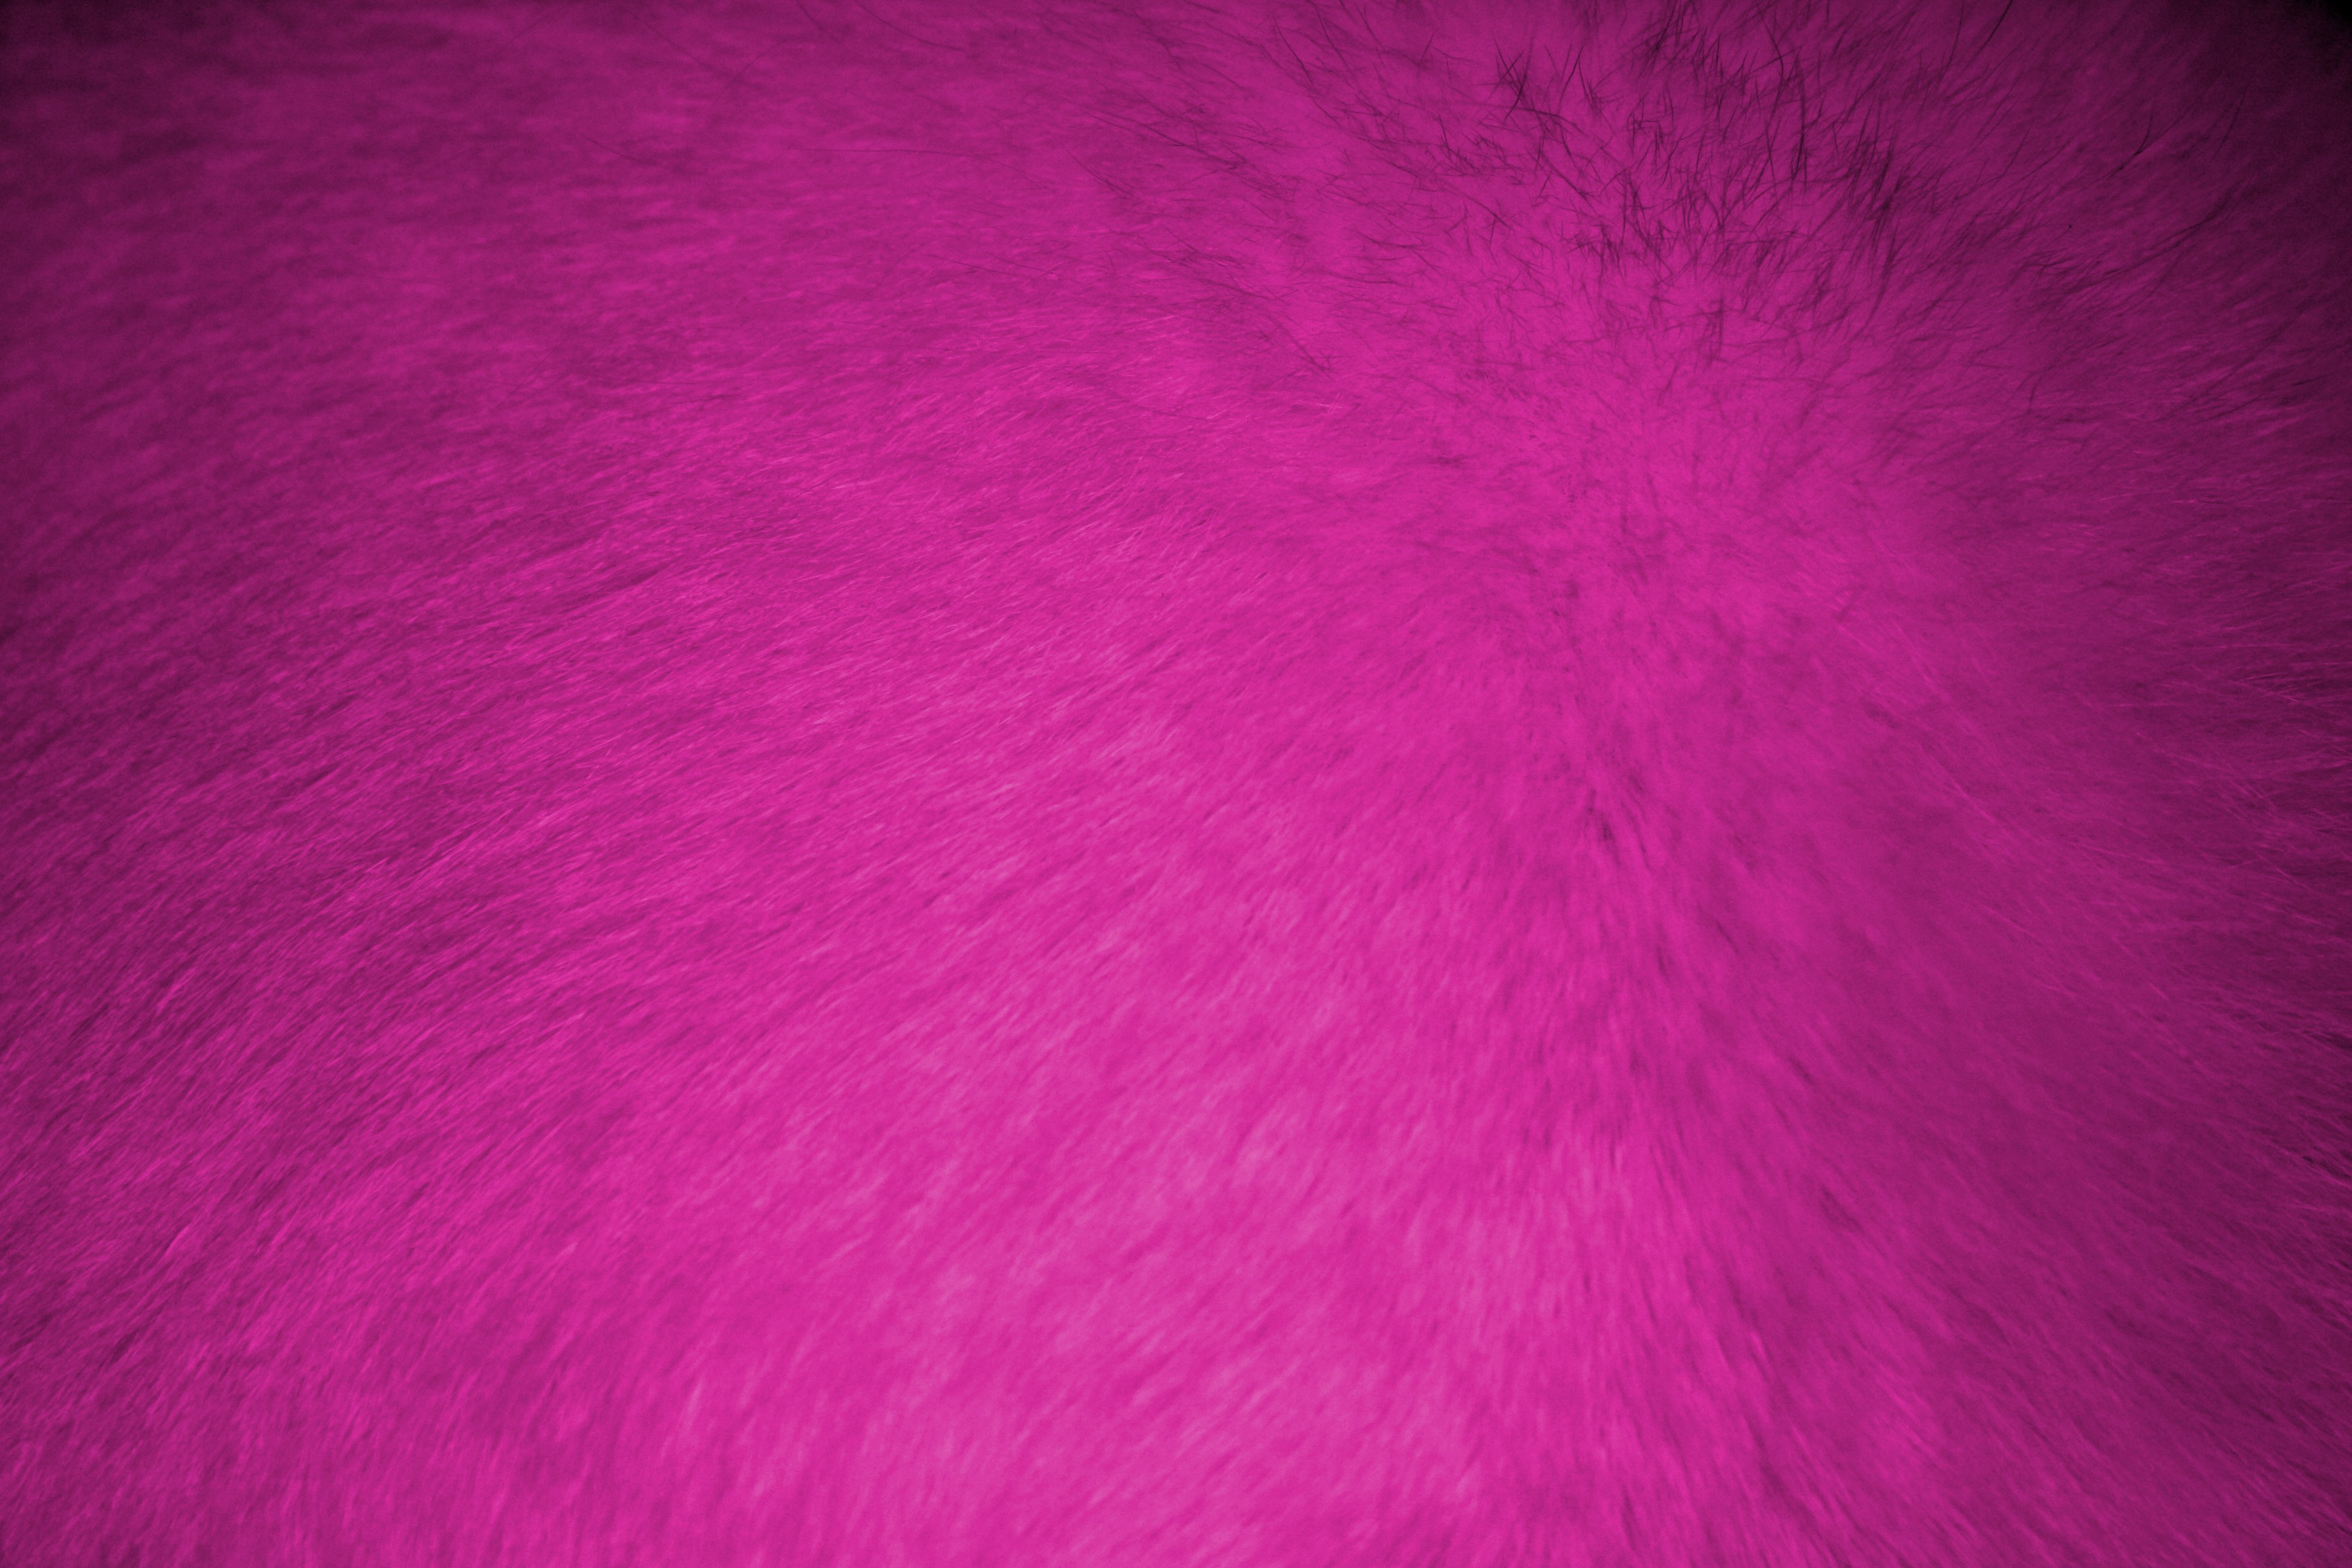 Hot Pink Fur Texture   High Resolution Photo   Dimensions 3888 3888x2592